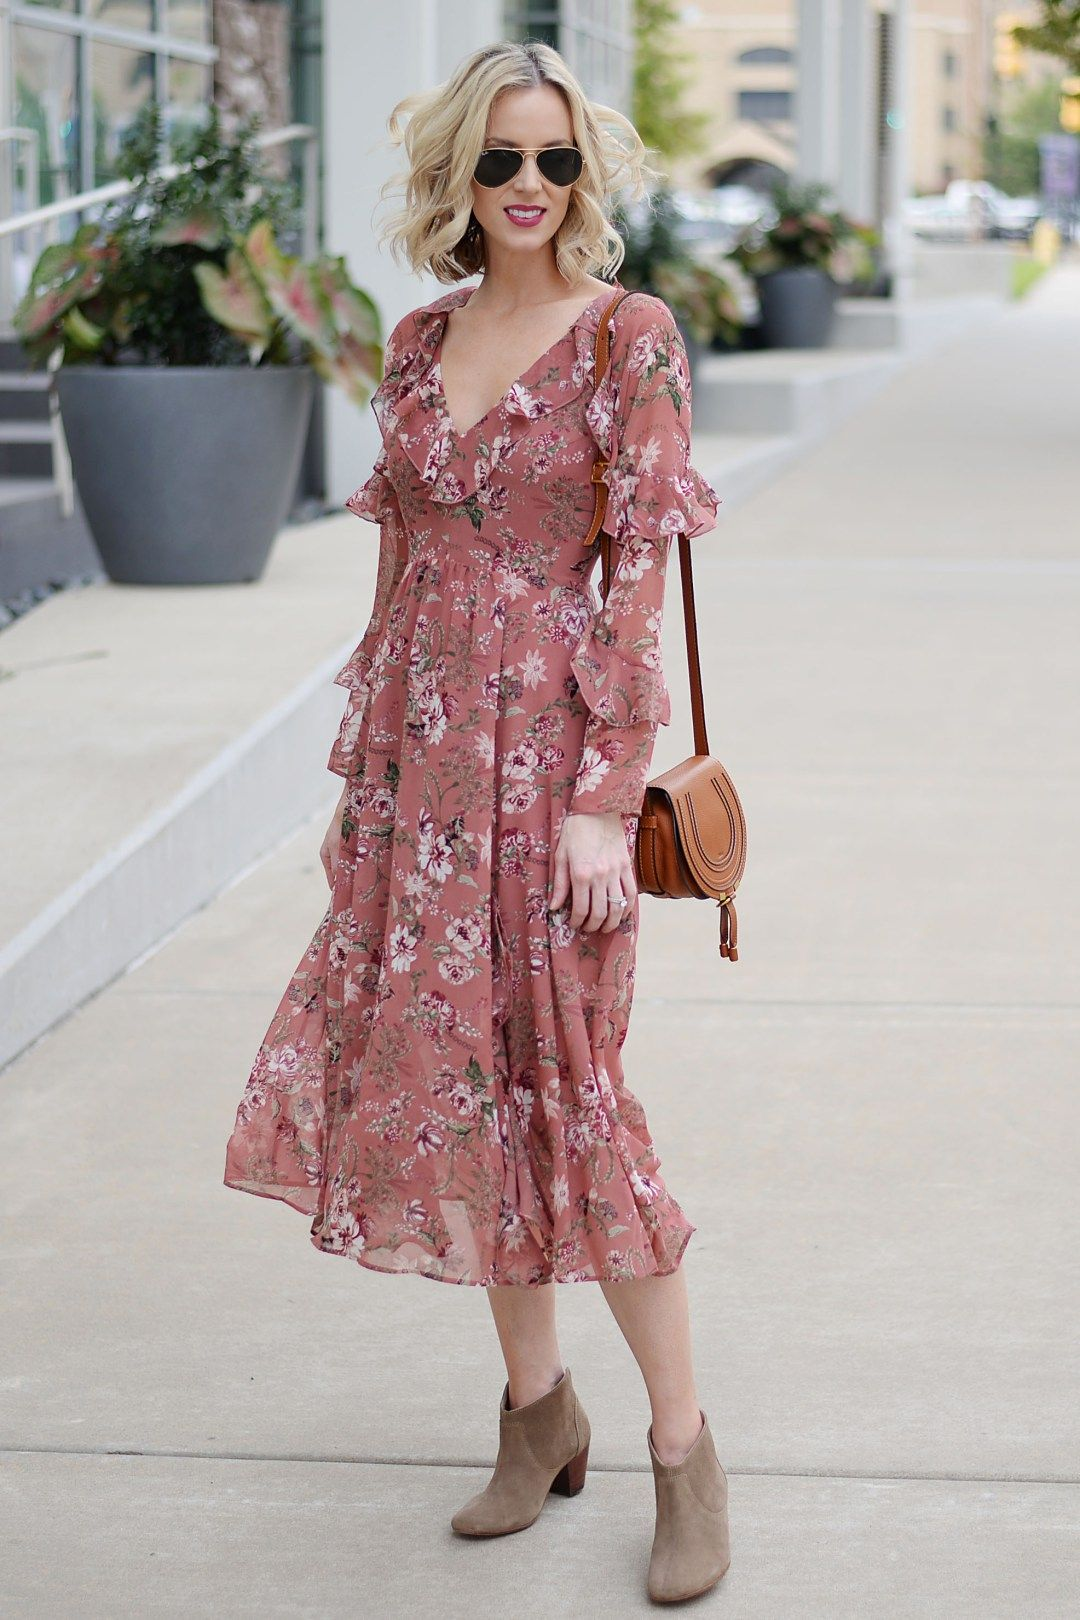 The Dress Of The Season It S Love Straight A Style Midi Dress Outfit Fall Floral Midi Dress Outfit Fall Dress Outfit